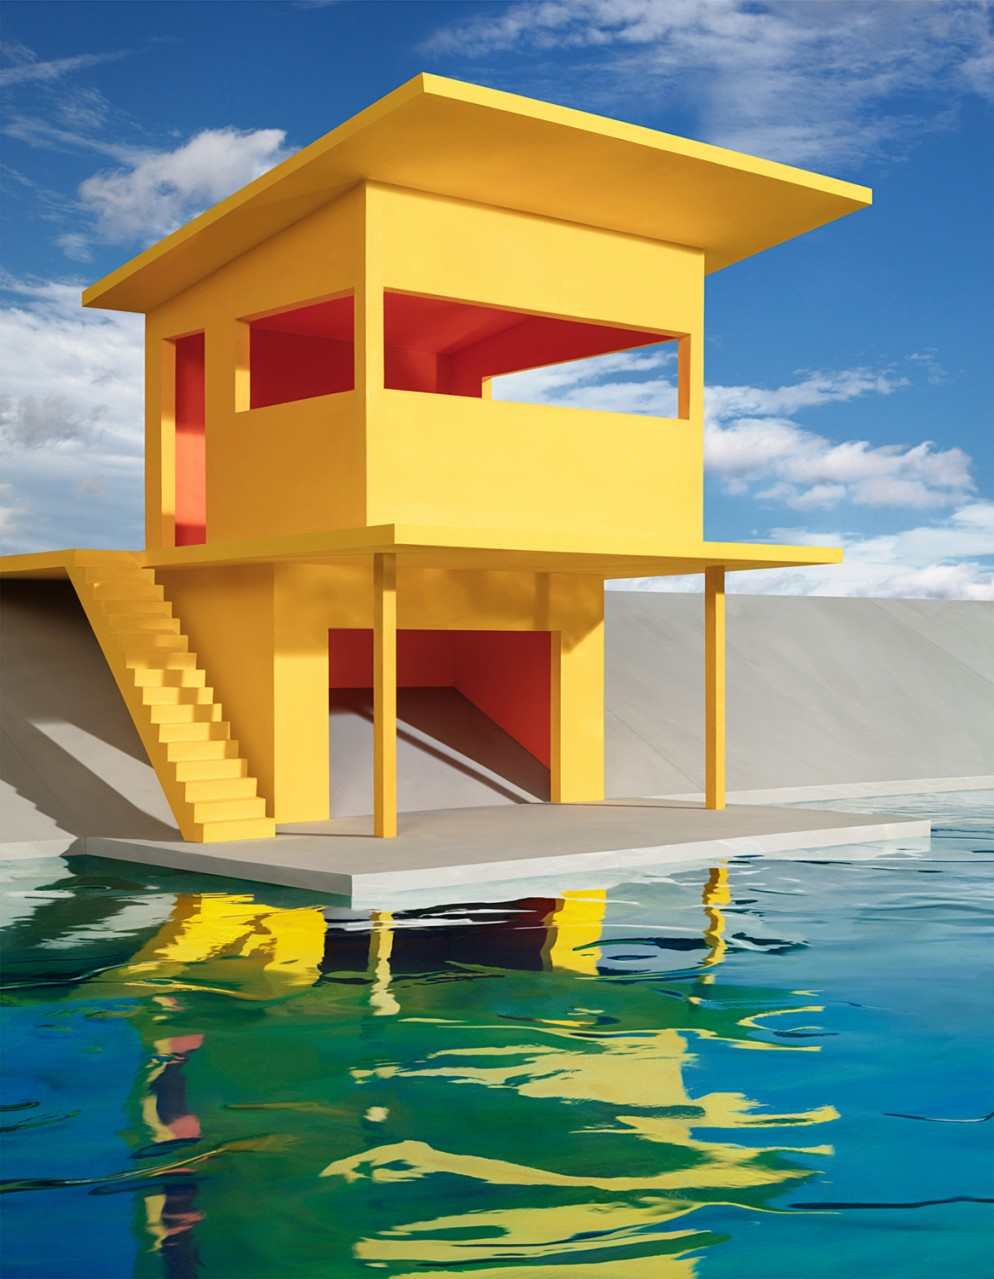 CASEBERE_Bright-Yellow-House-on-Water_2018_Copyright-of-the-artist_Courtesy-Galerie-Templon-Paris-Brussels